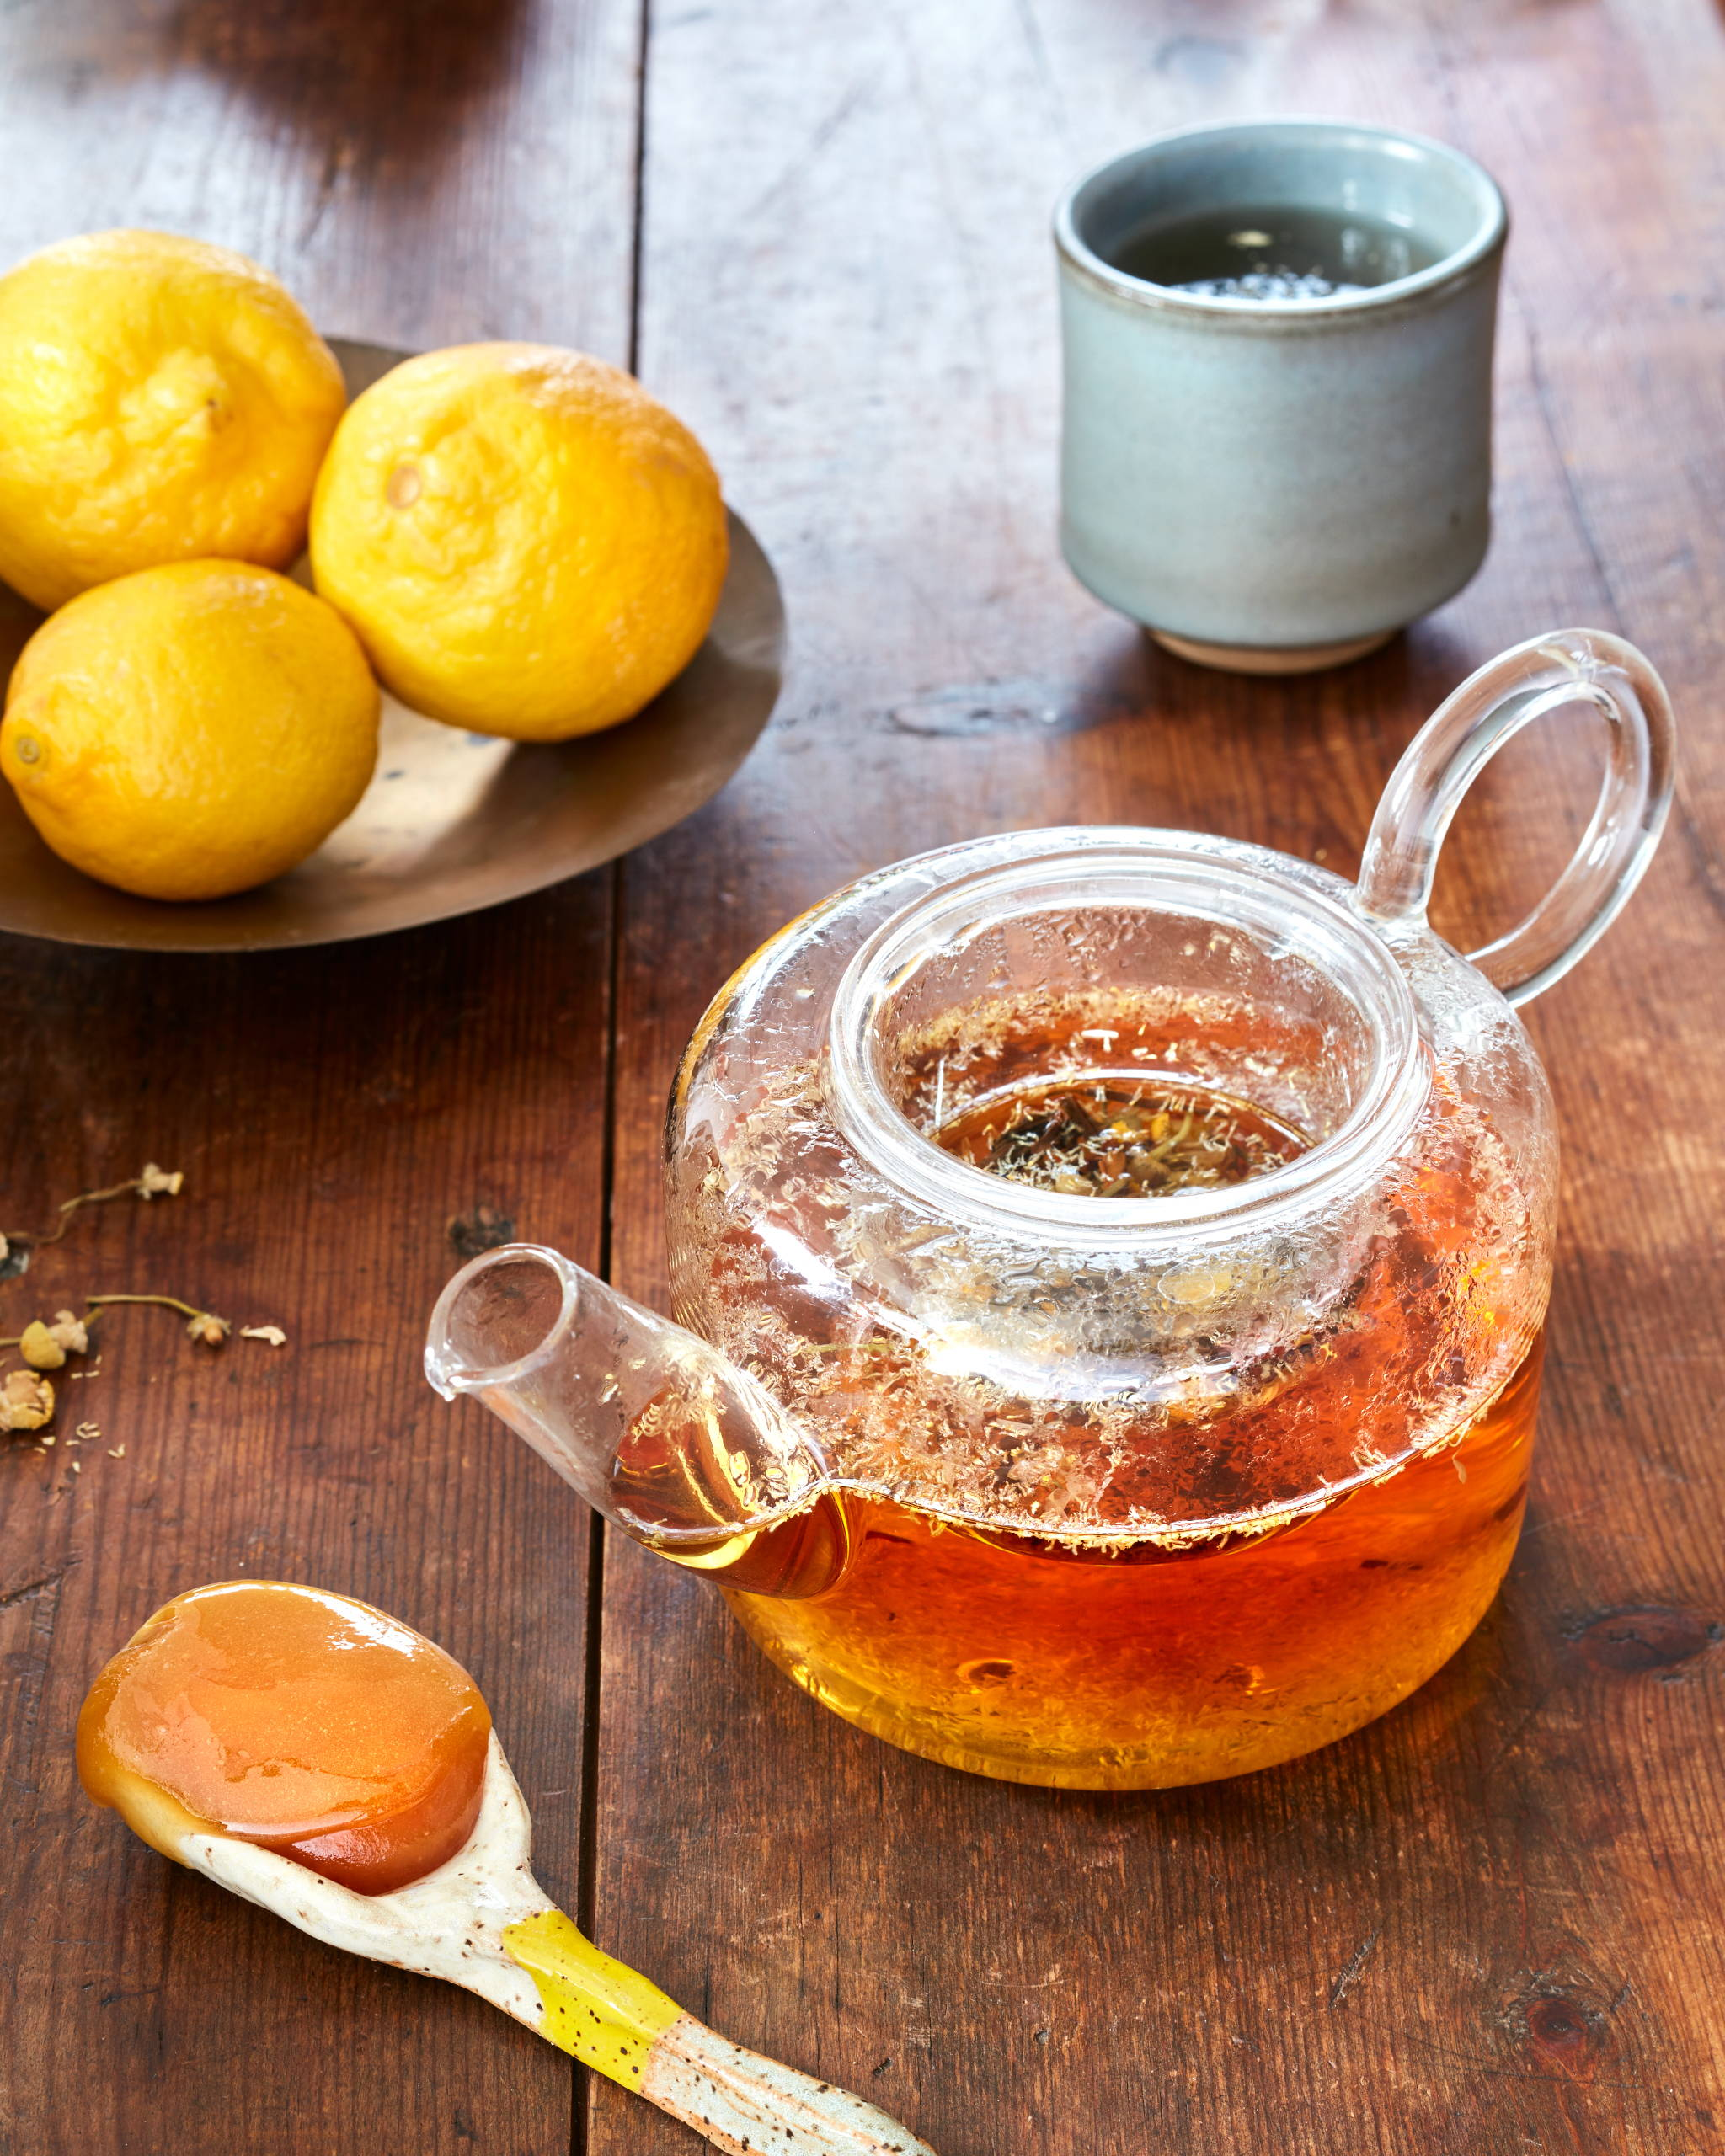 Plate of lemons and glass tea kettle filled with a healthy tea made with manuka honey